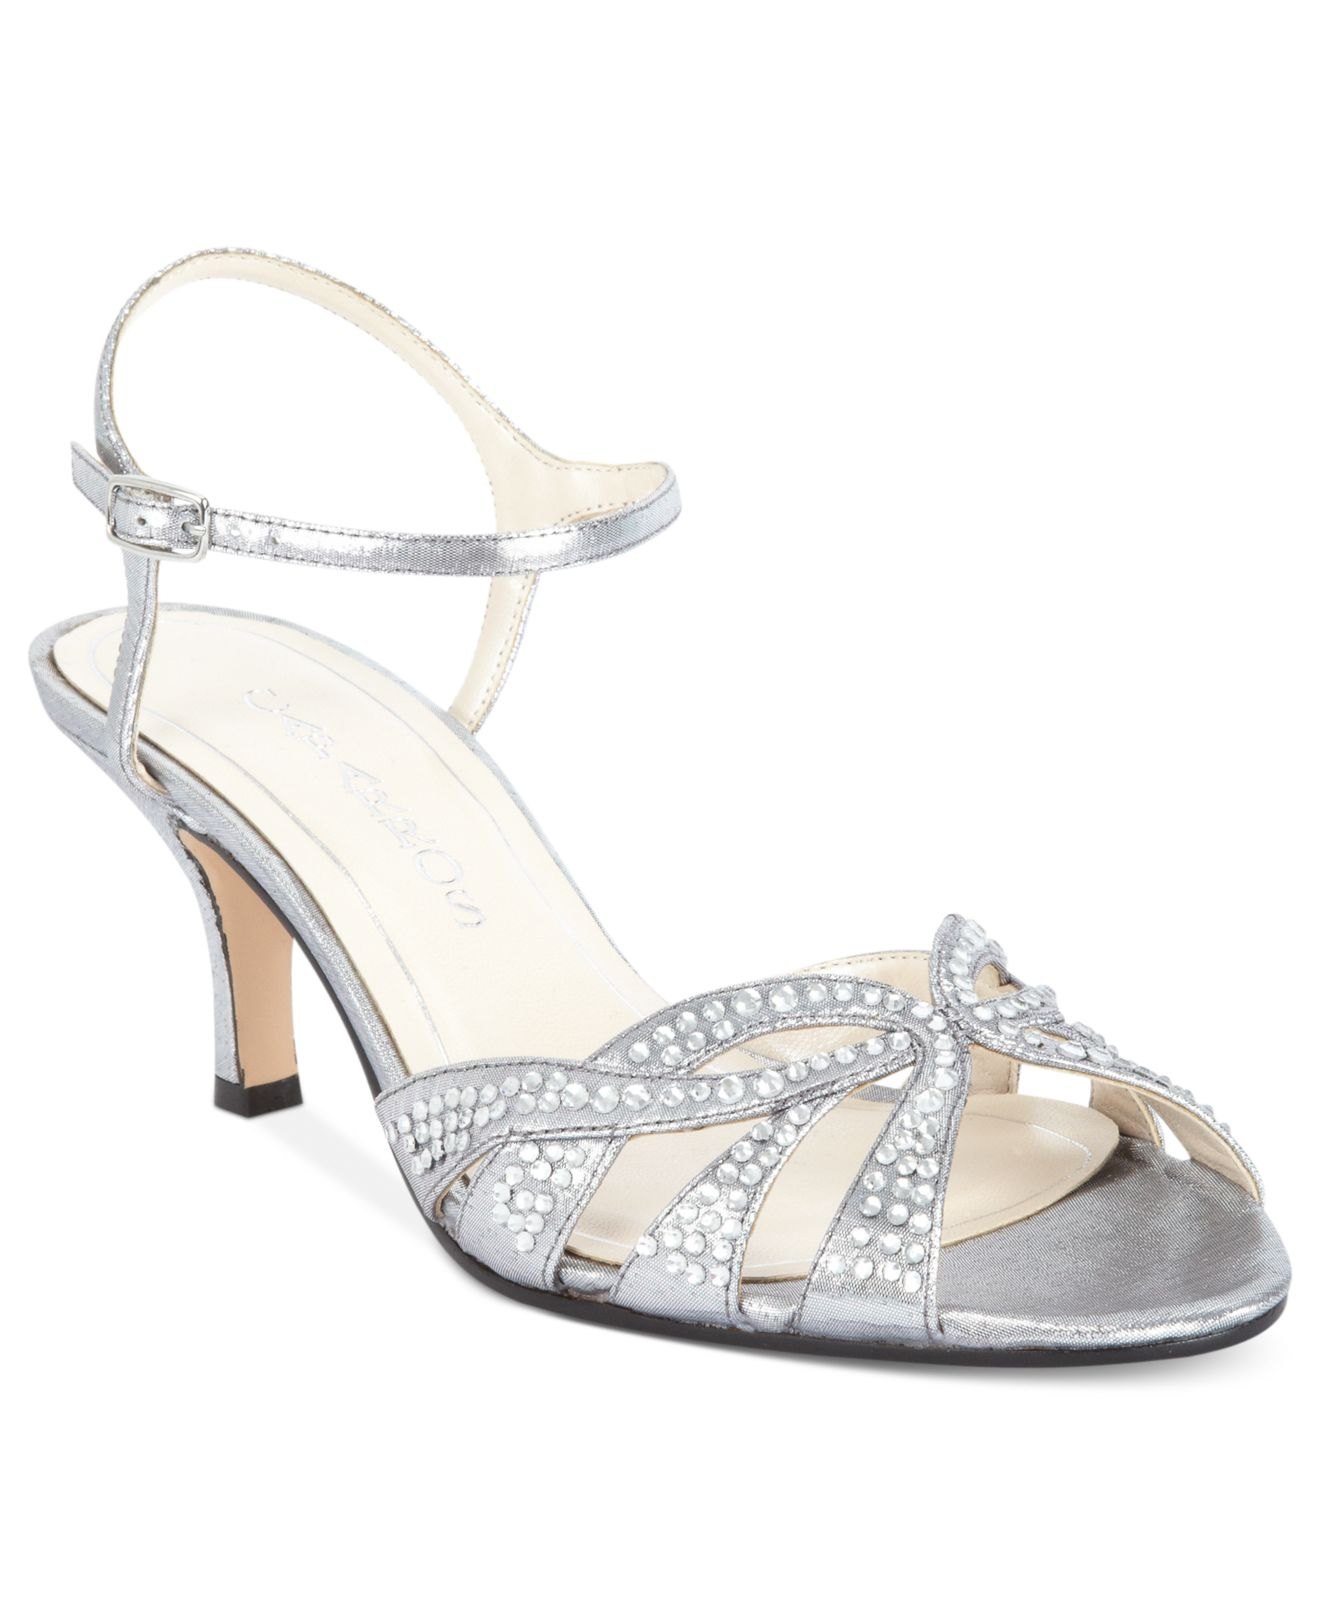 Caparros Wedding Shoes Silver